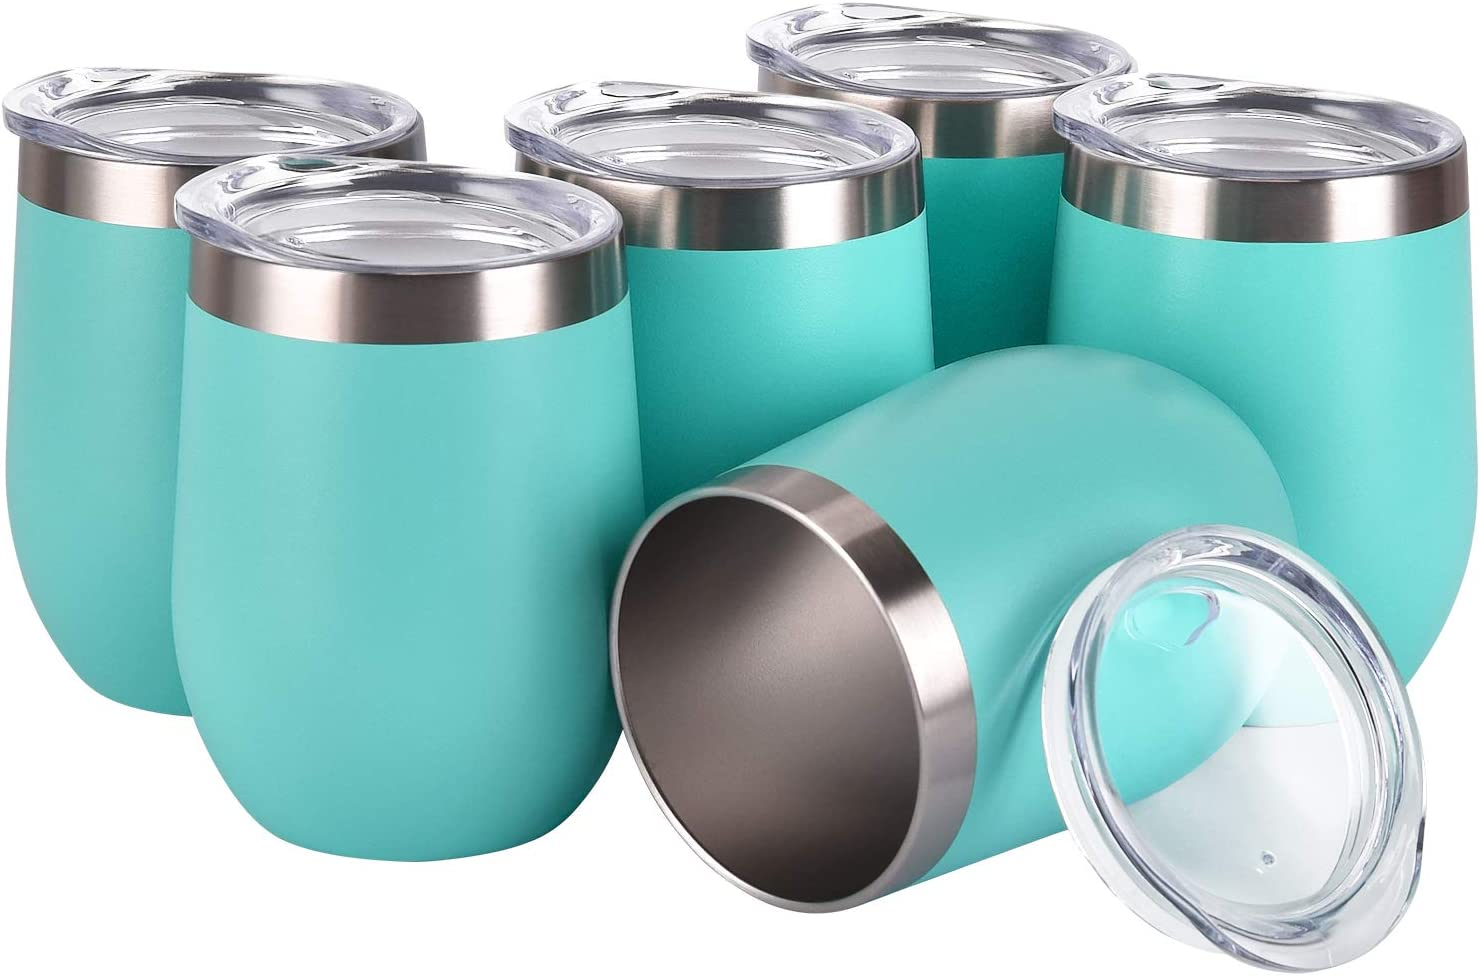 6 Pack 12Oz Stemless Wine Tumbler Wine Glasses Set Stainless Steel Cups with Lid Set of 6 for Picnic Camping Party or Family Daily Use Shatterproof - BPA Free (Aqua blue, 12Oz)